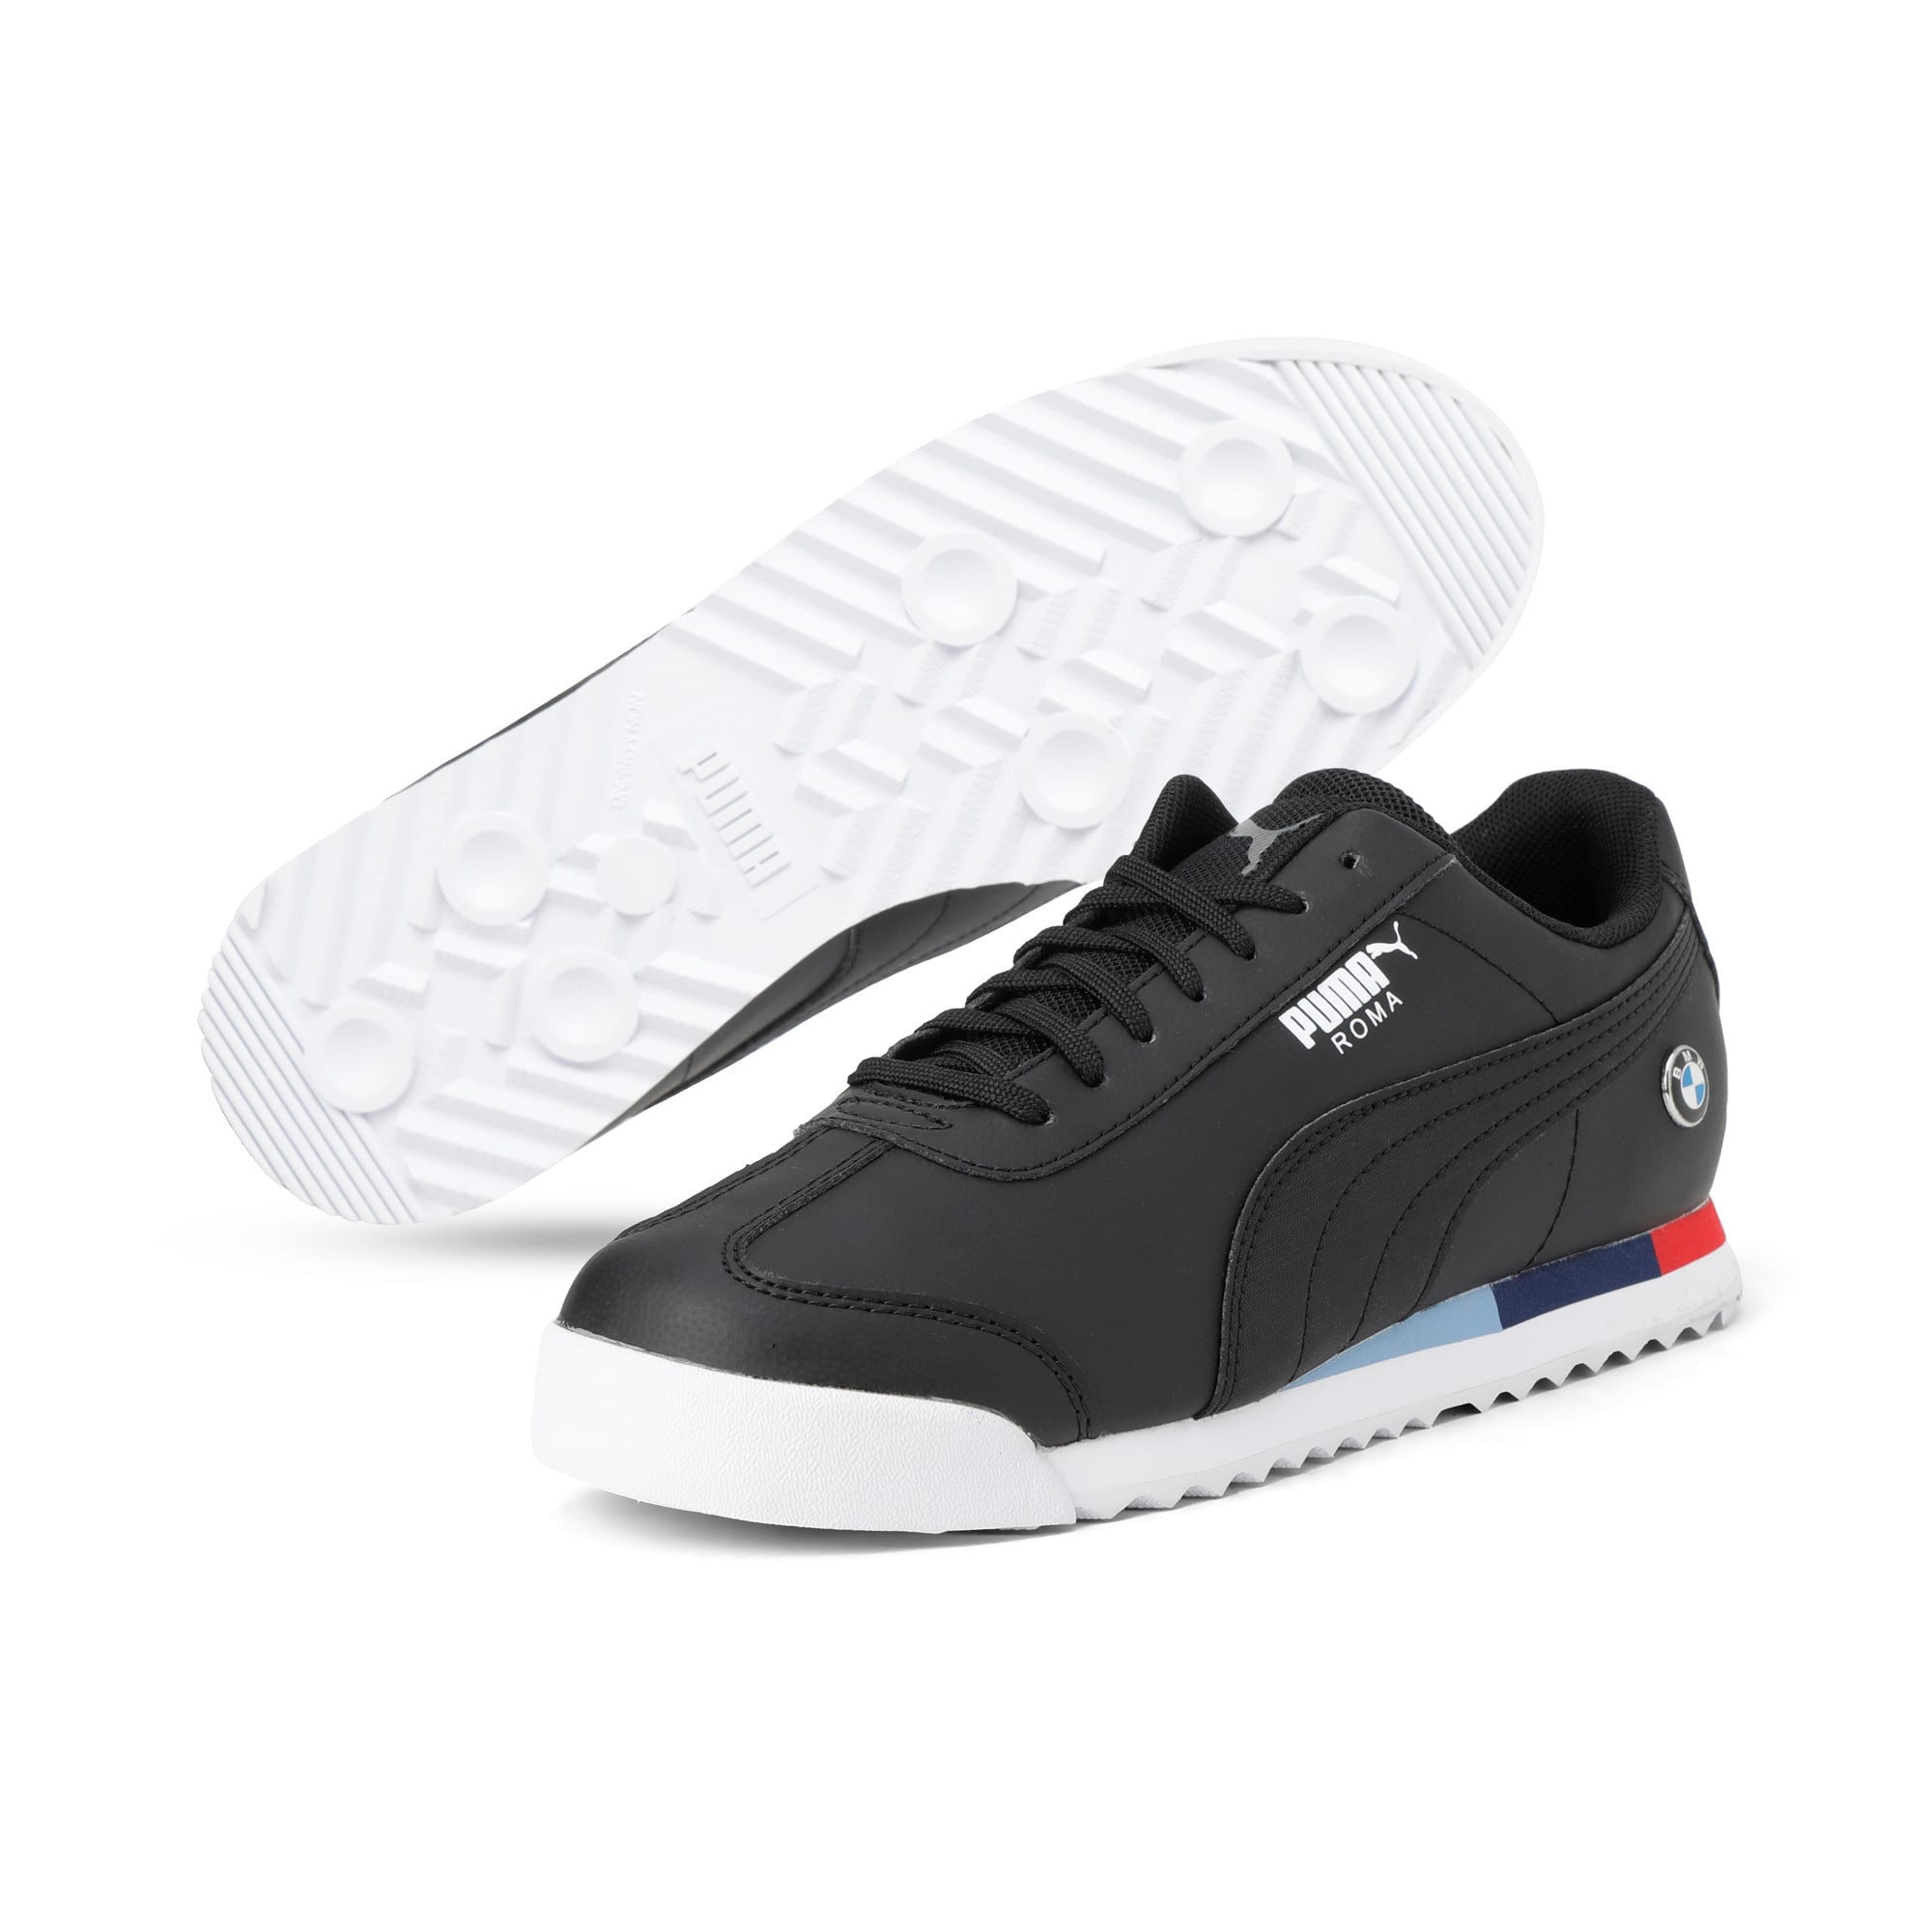 Thumbnail 2 of BMW Motorsport Roma Youth Trainers, Puma Black-Puma Black, medium-IND